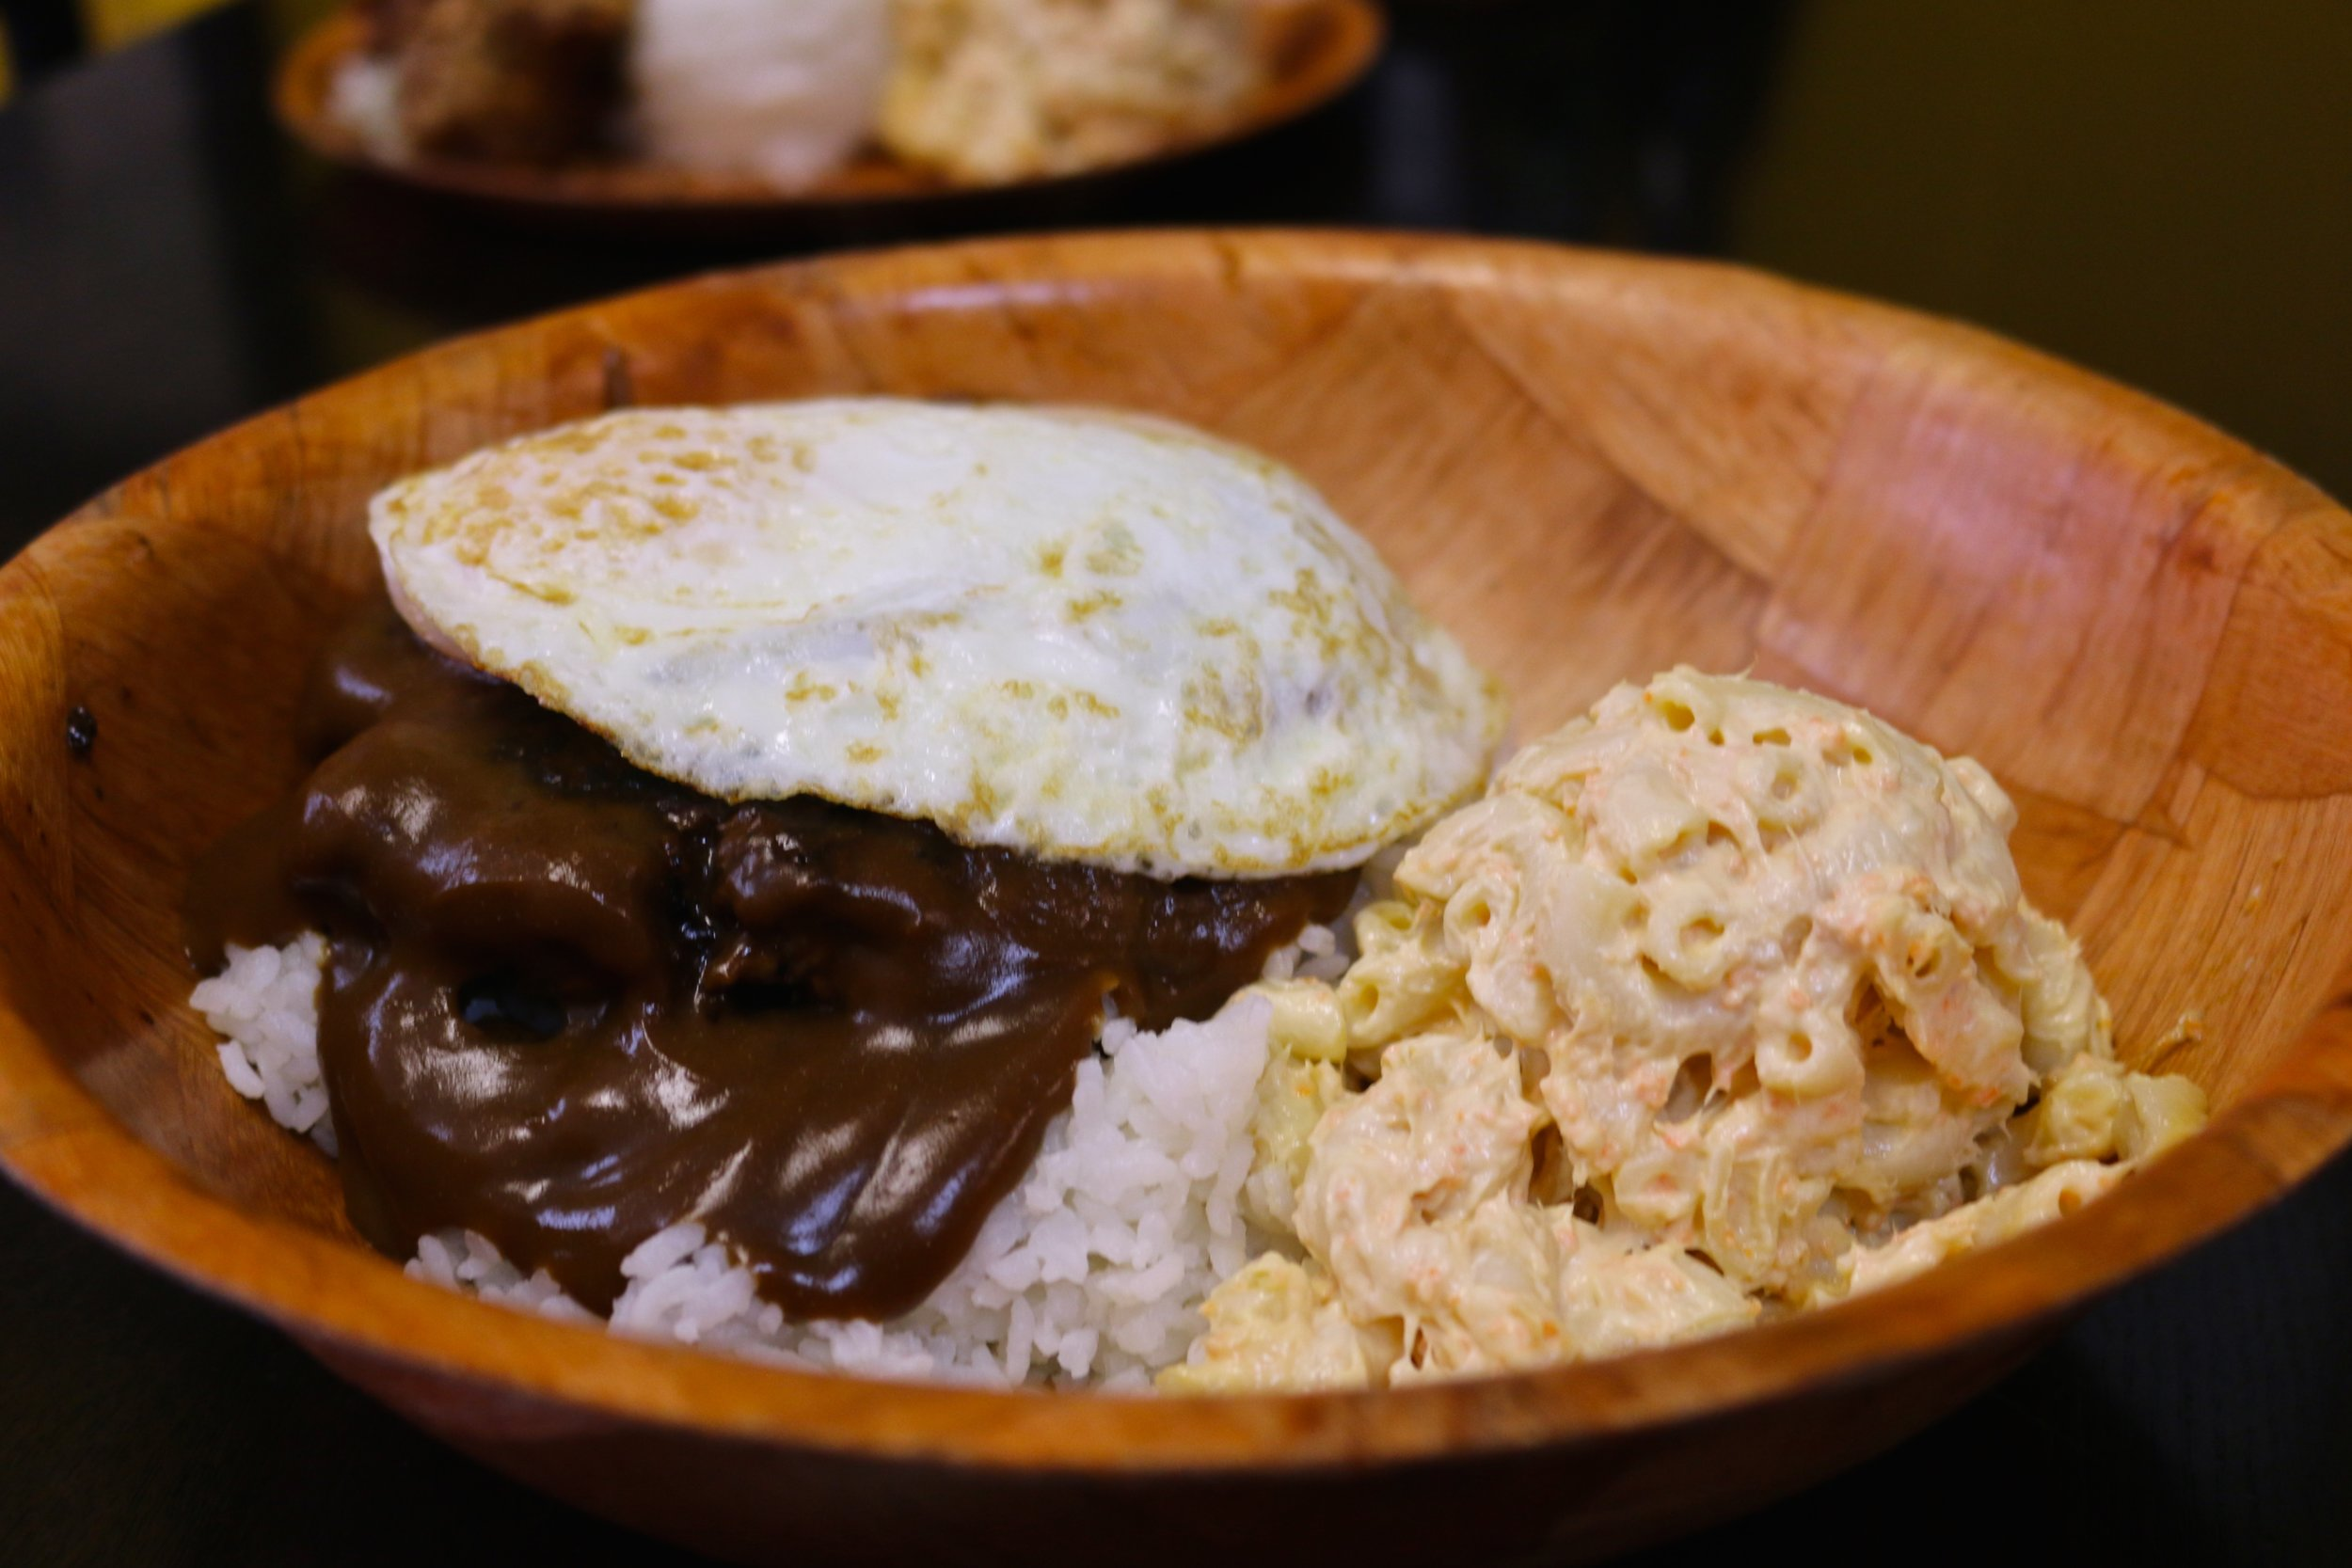 LOCO MOCO - UNDER THAT GRAVY IS A BURGER PATTY, TOPPED WITH A SUNNYSIDE EGG AND OF COURSE, MORE OF MY FAVE, MAC SALAD